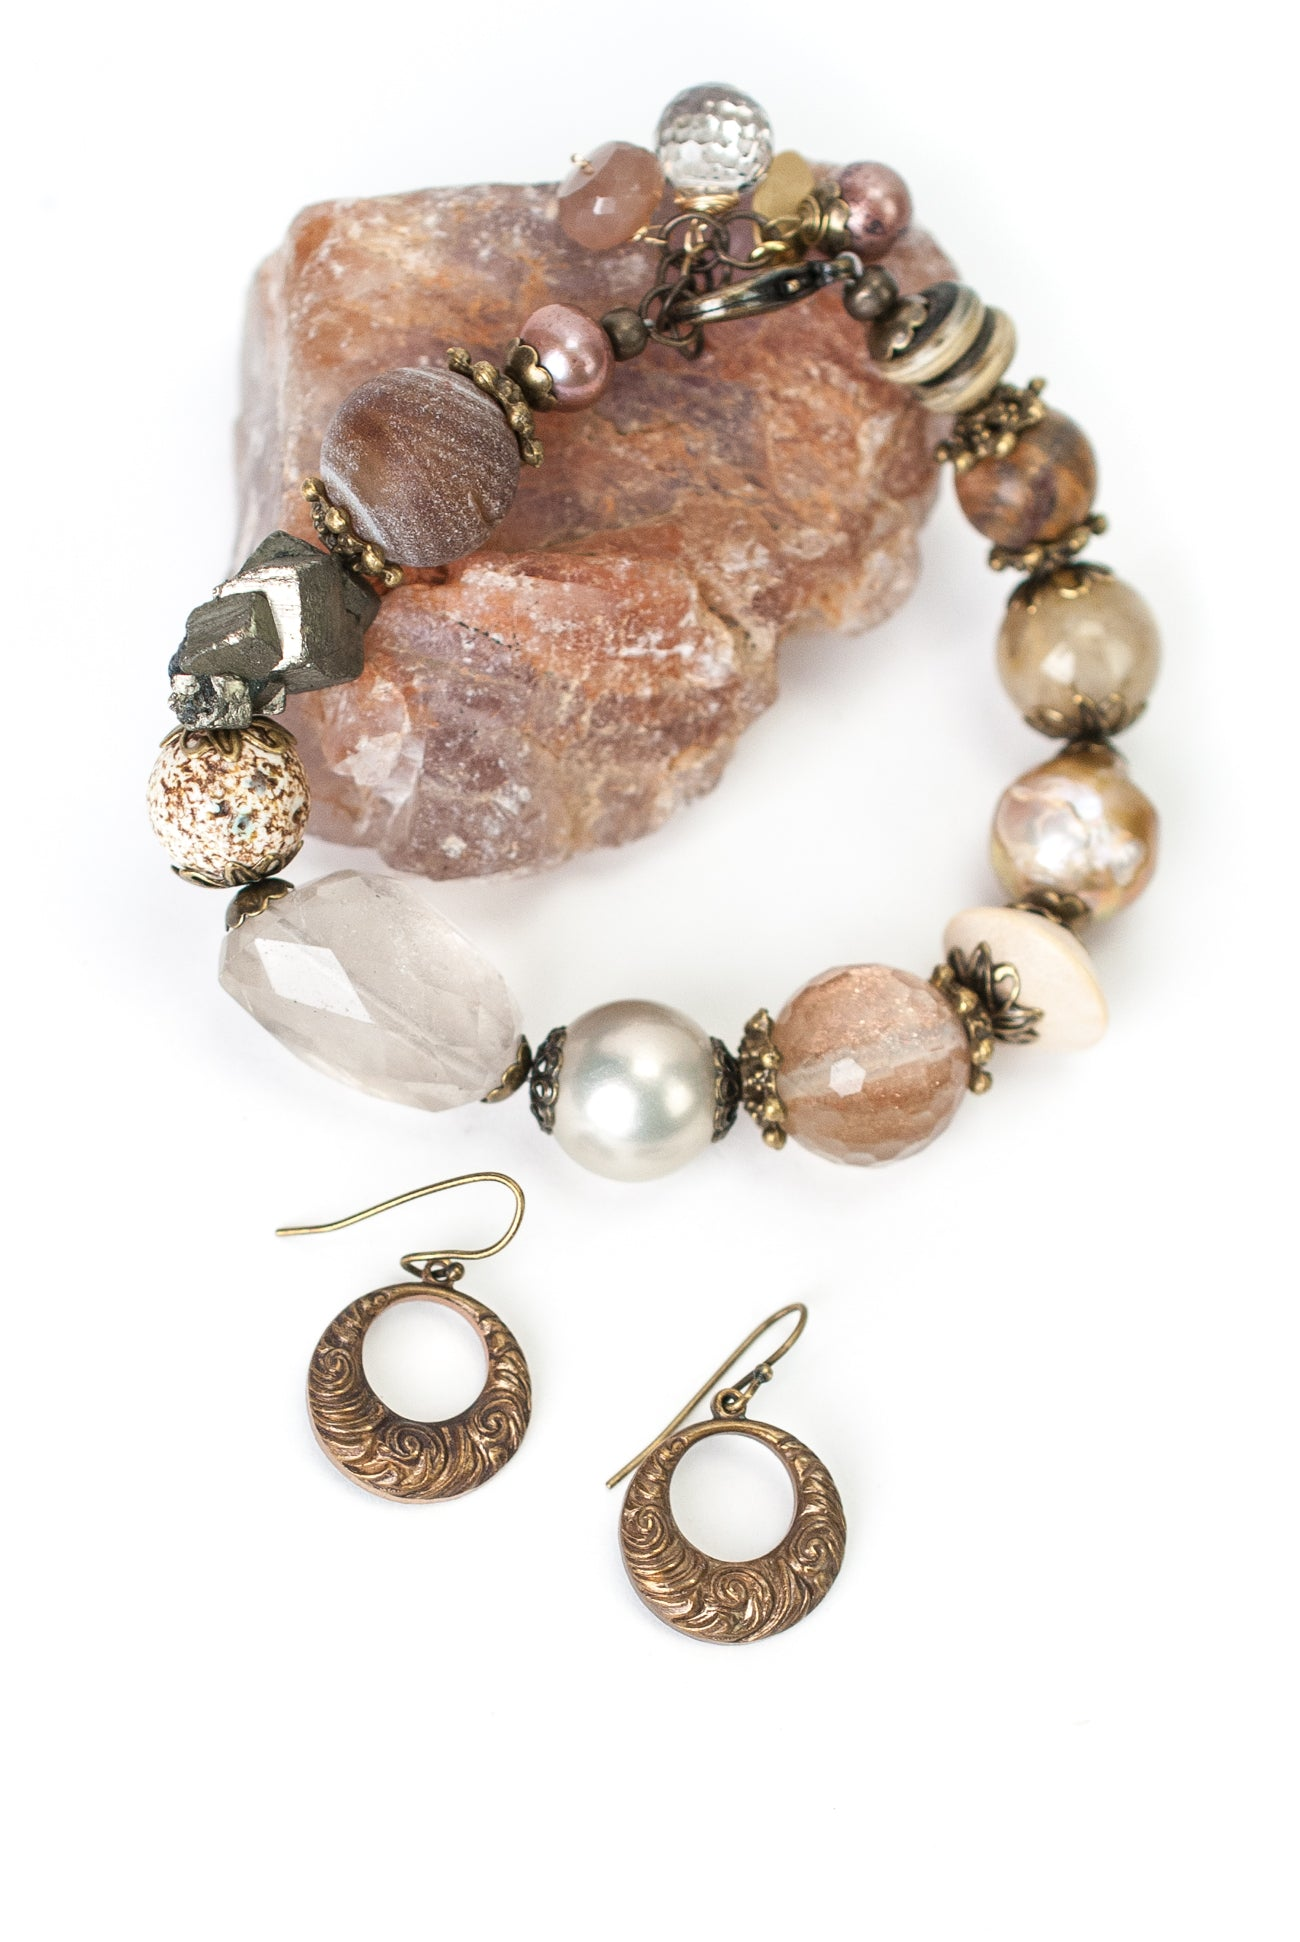 One of a Kind Druzy, Pyrite, Czech Glass Collage Bracelet and Earrings Set